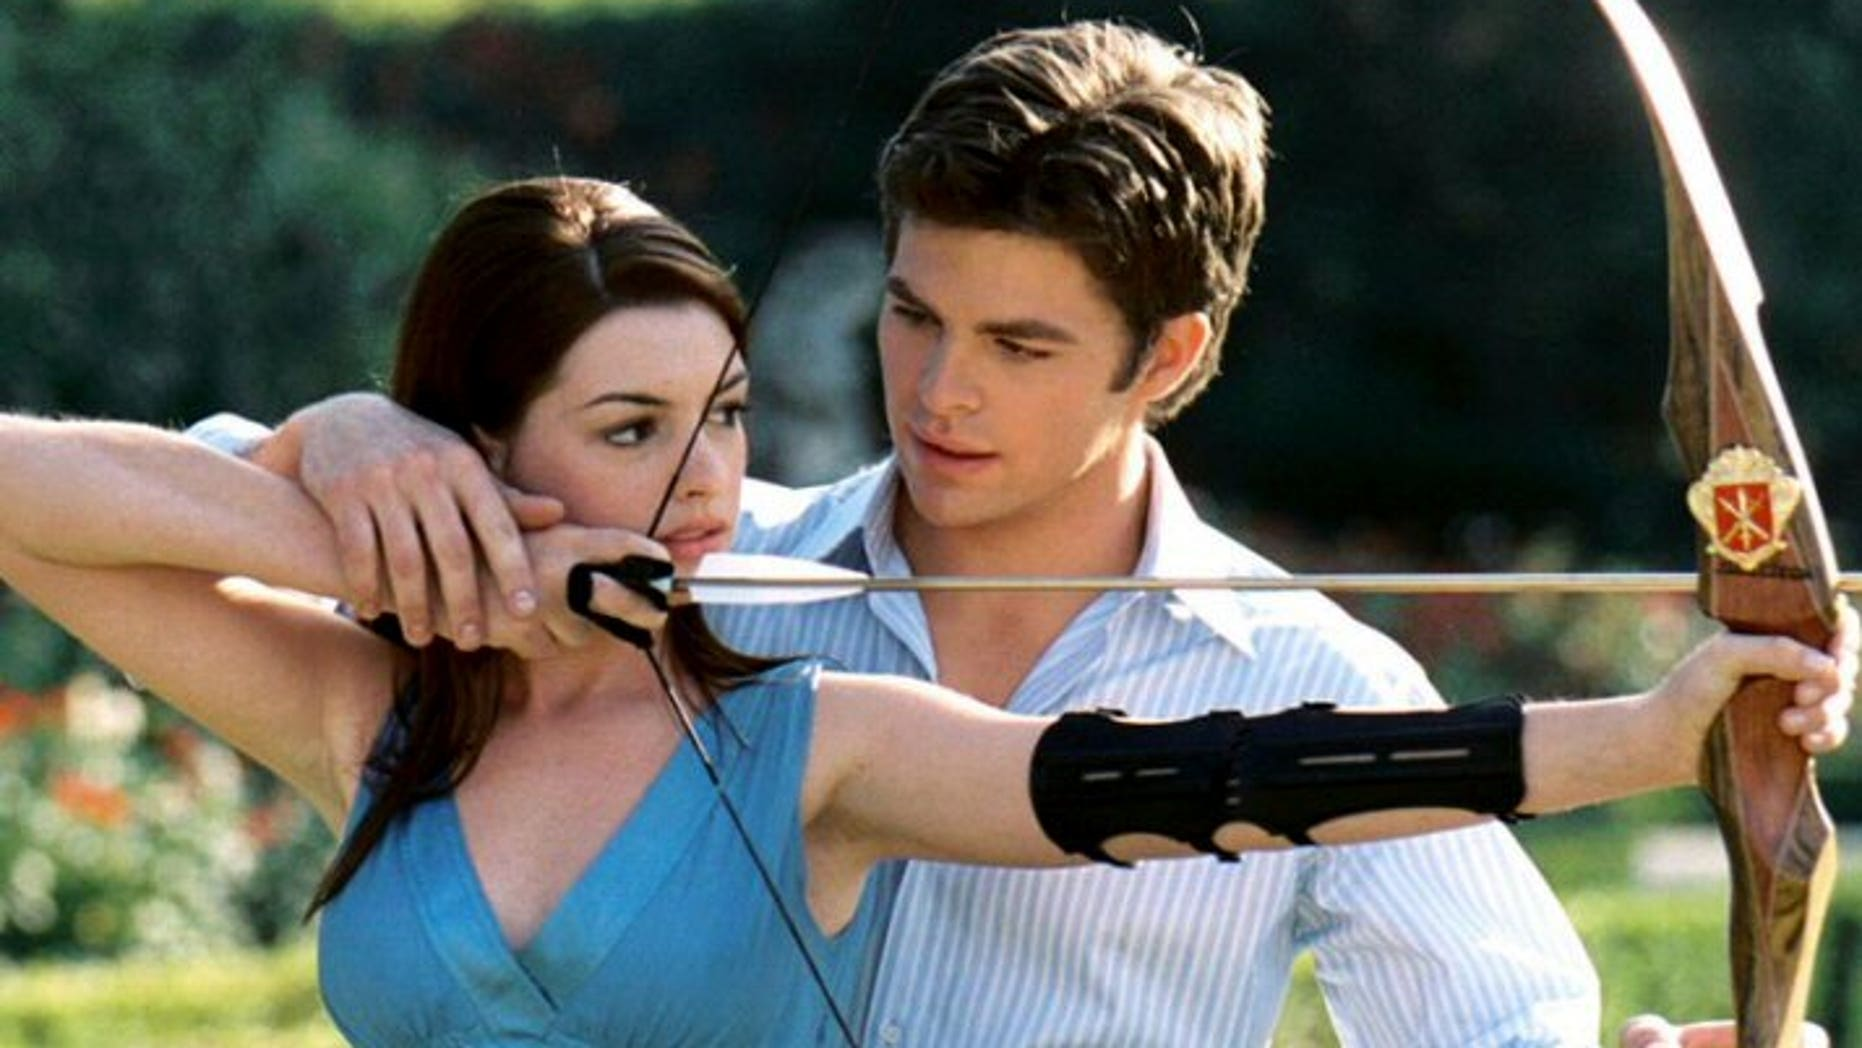 A scene from 'The Princess Diaries,' a G-rated film which a study says has 42 seconds of sexual content.